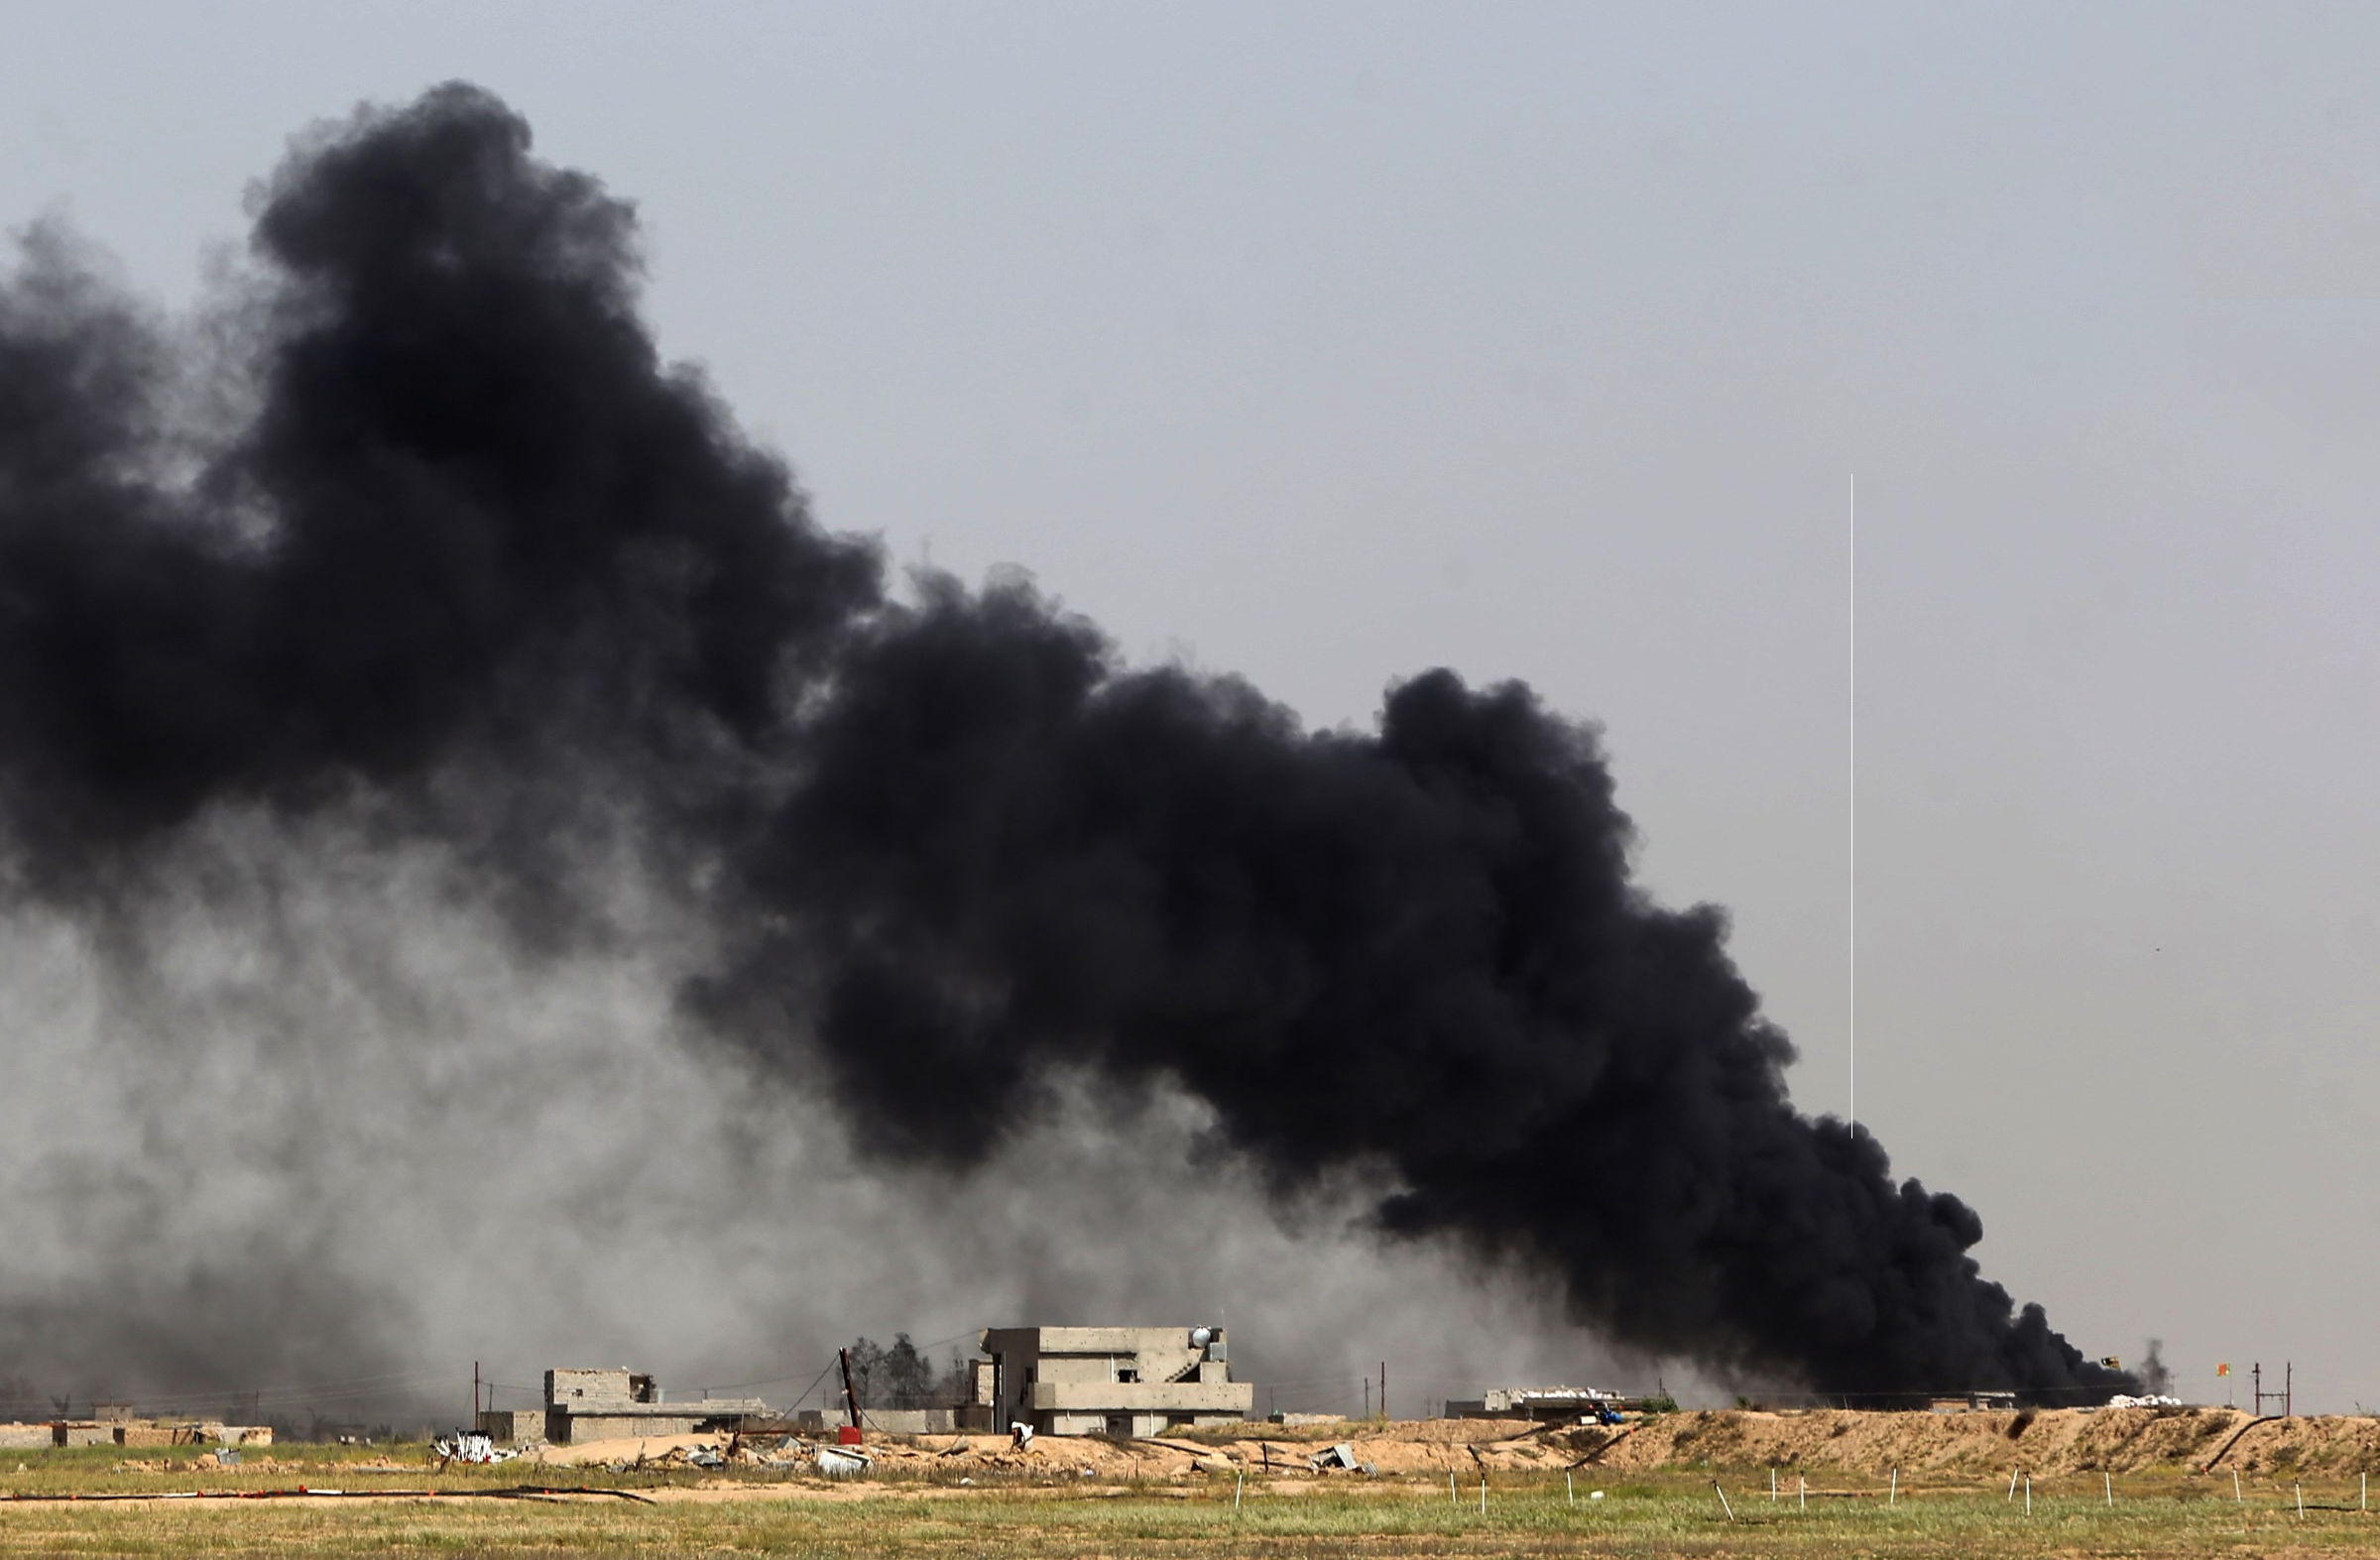 Oil ISIS Leaders Sanctions Middle East